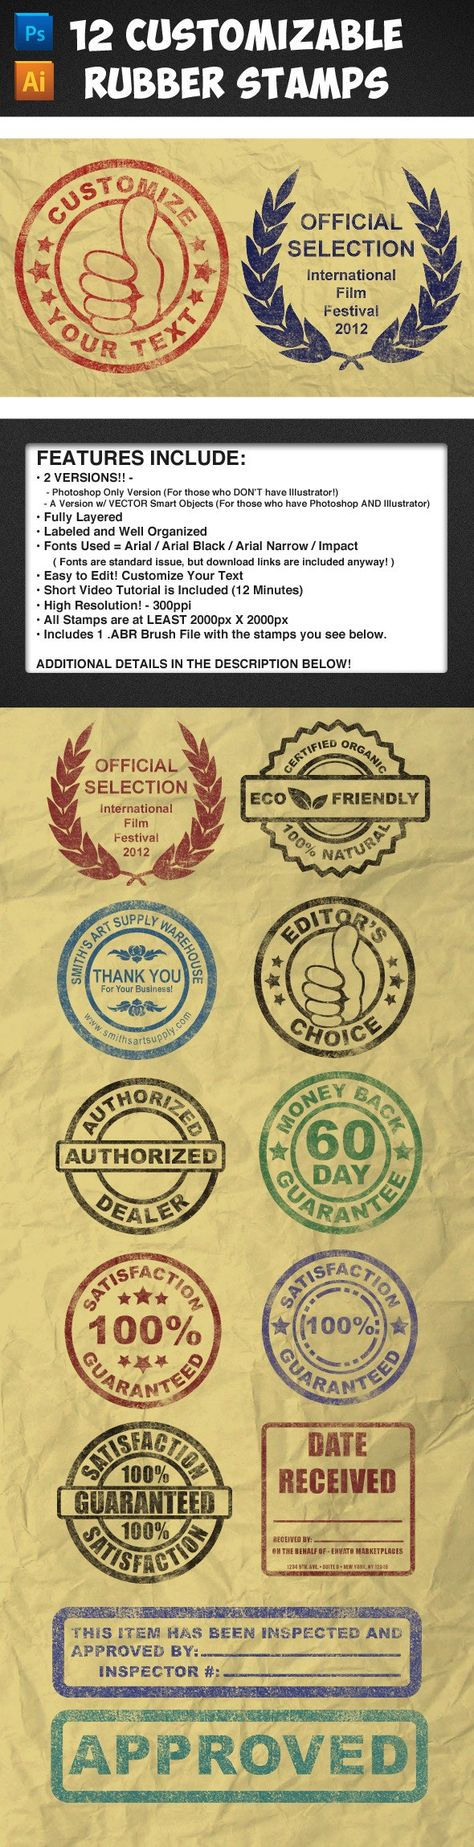 12 Customizable Rubber Stamps - Vol 1